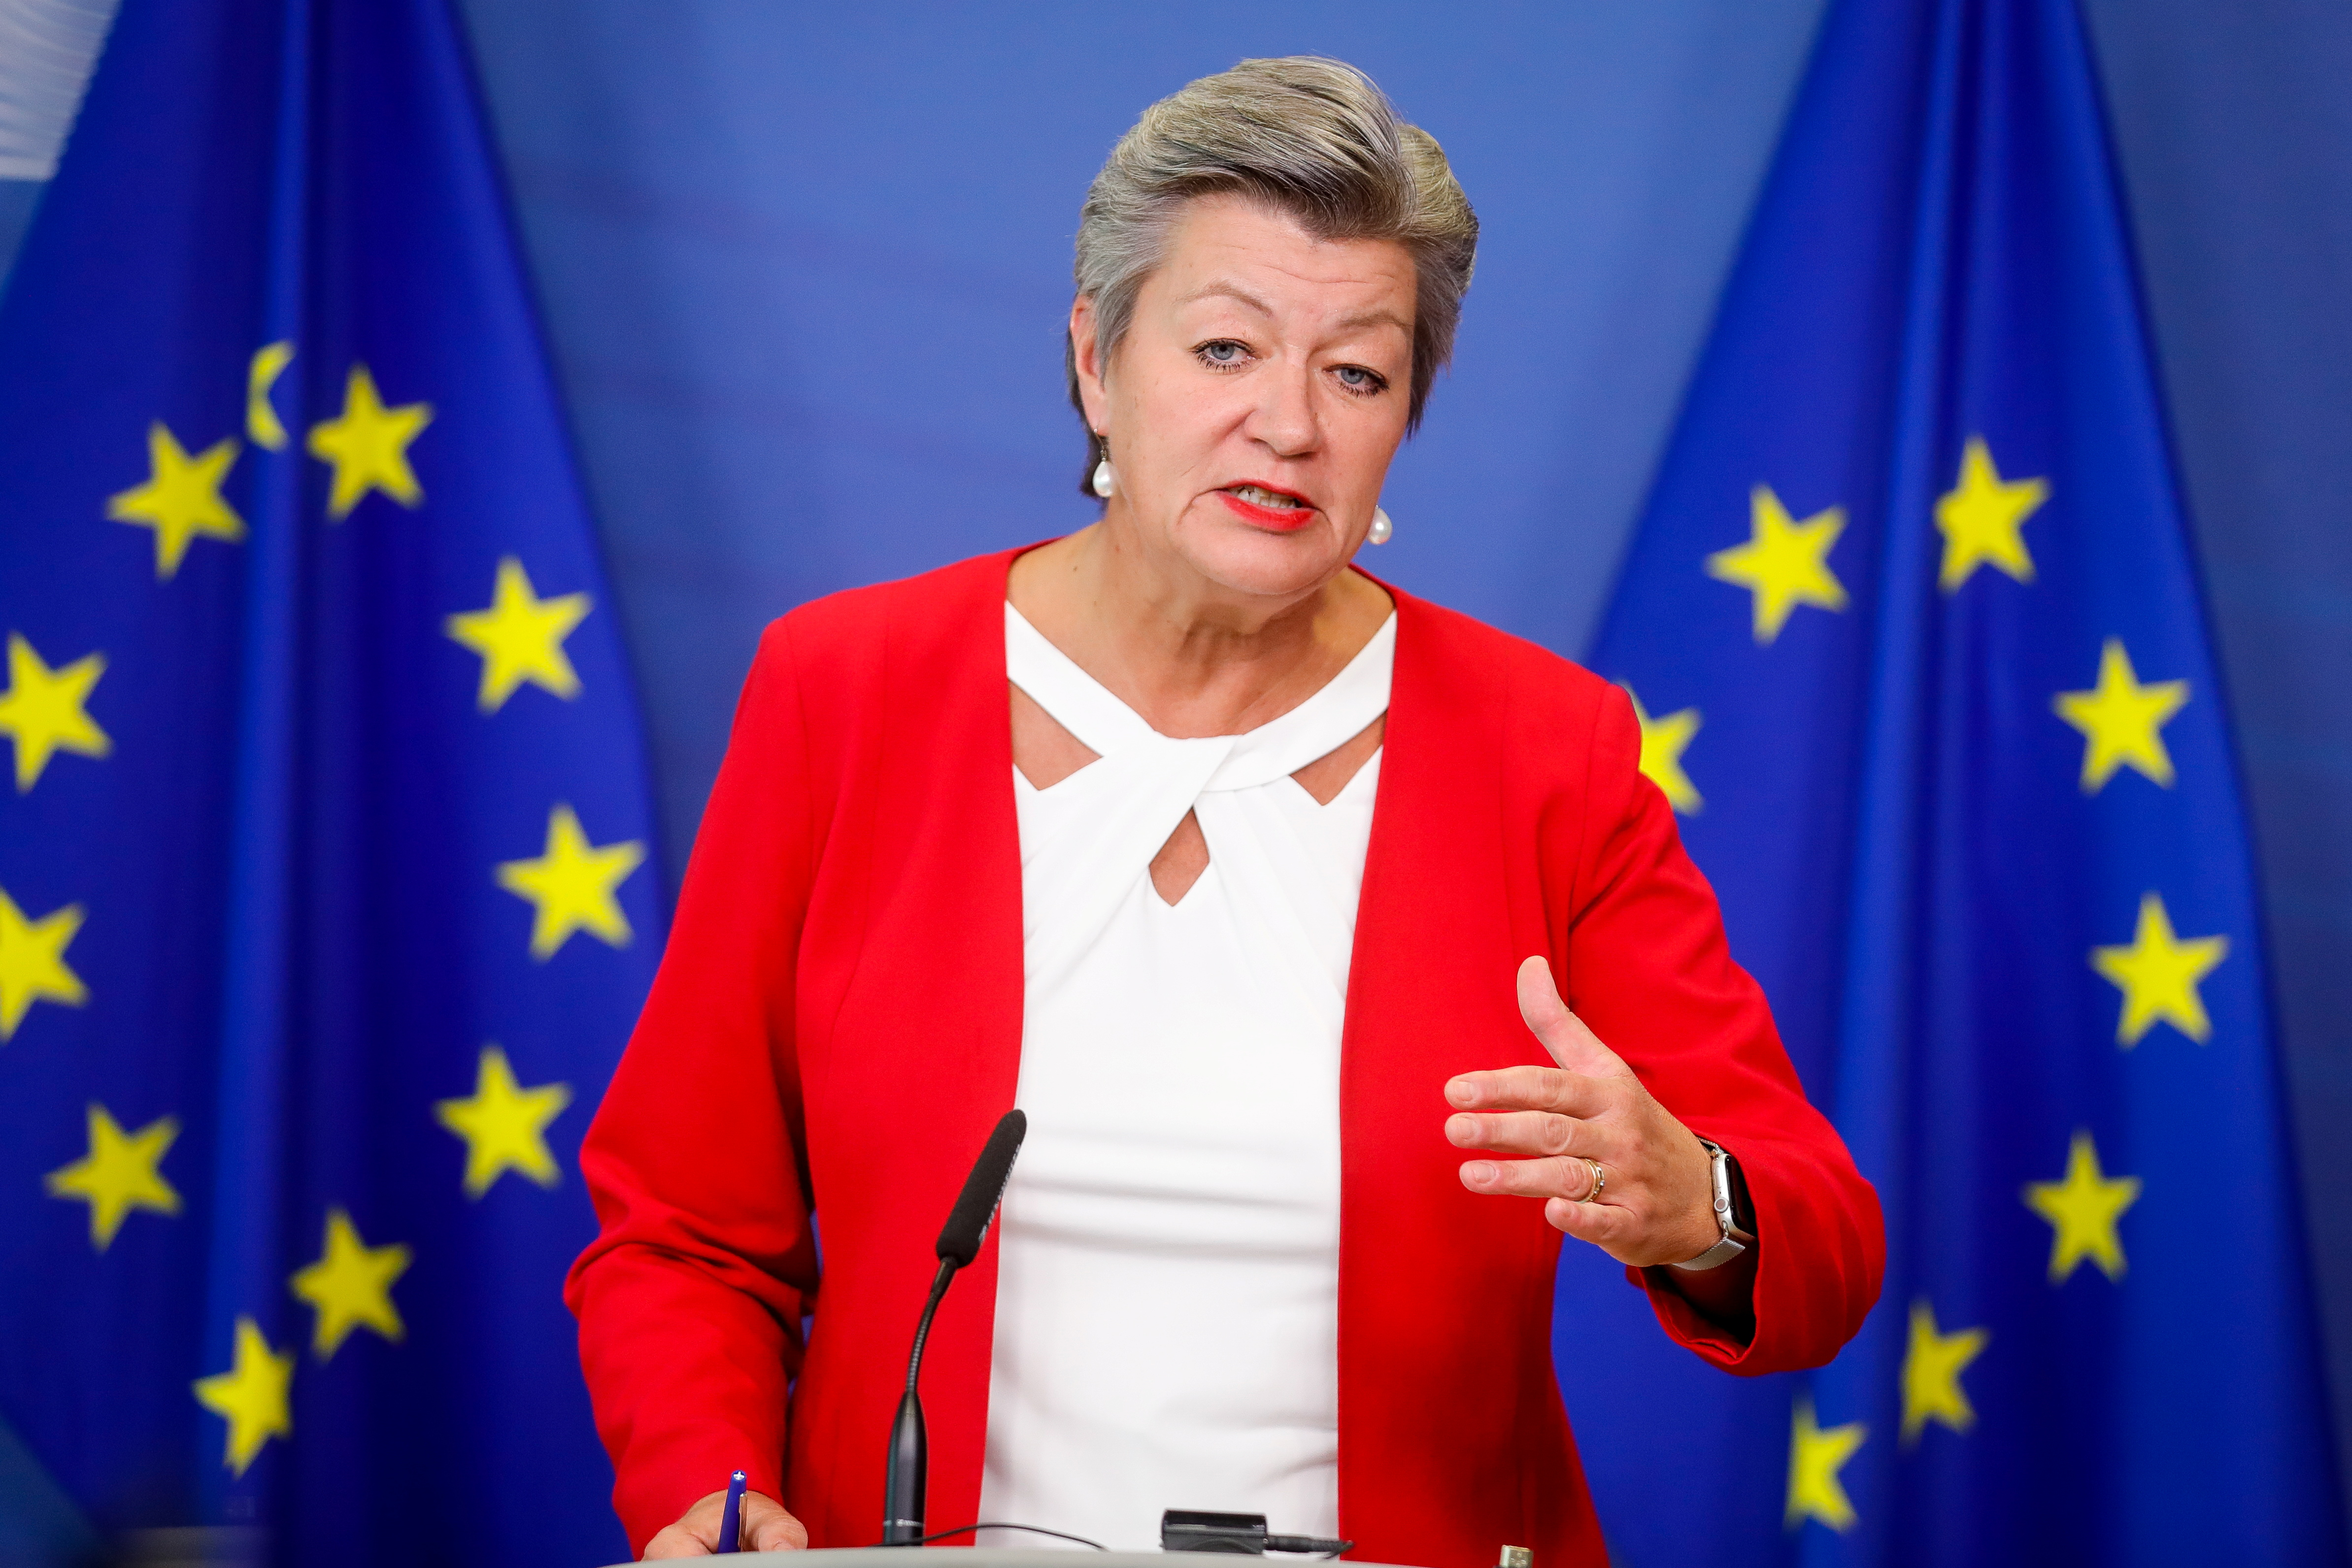 European Commissioner for Home Affairs, Ylva Johansson gives a news conference following the EU High-level Forum on providing protection to Afghans at risk, at the European Commission, in Brussels, Belgium, October 7, 2021. Stephanie Lecocq/Pool via REUTERS